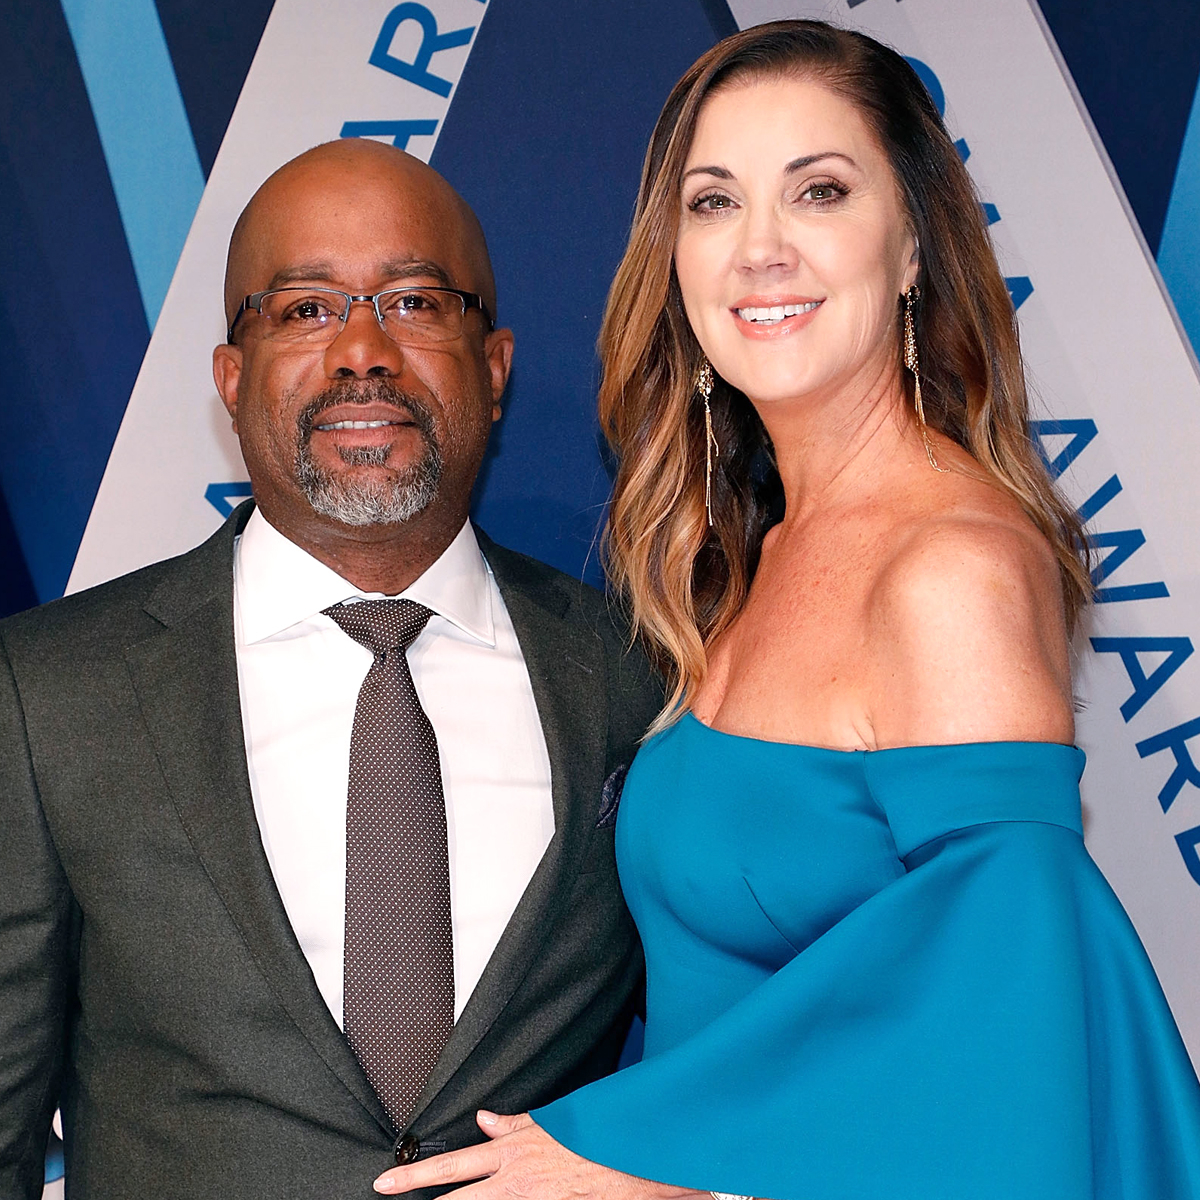 """Darius Rucker and Wife Decide to """"Consciously Uncouple"""" After 20 Years of Marriage - E! Online"""